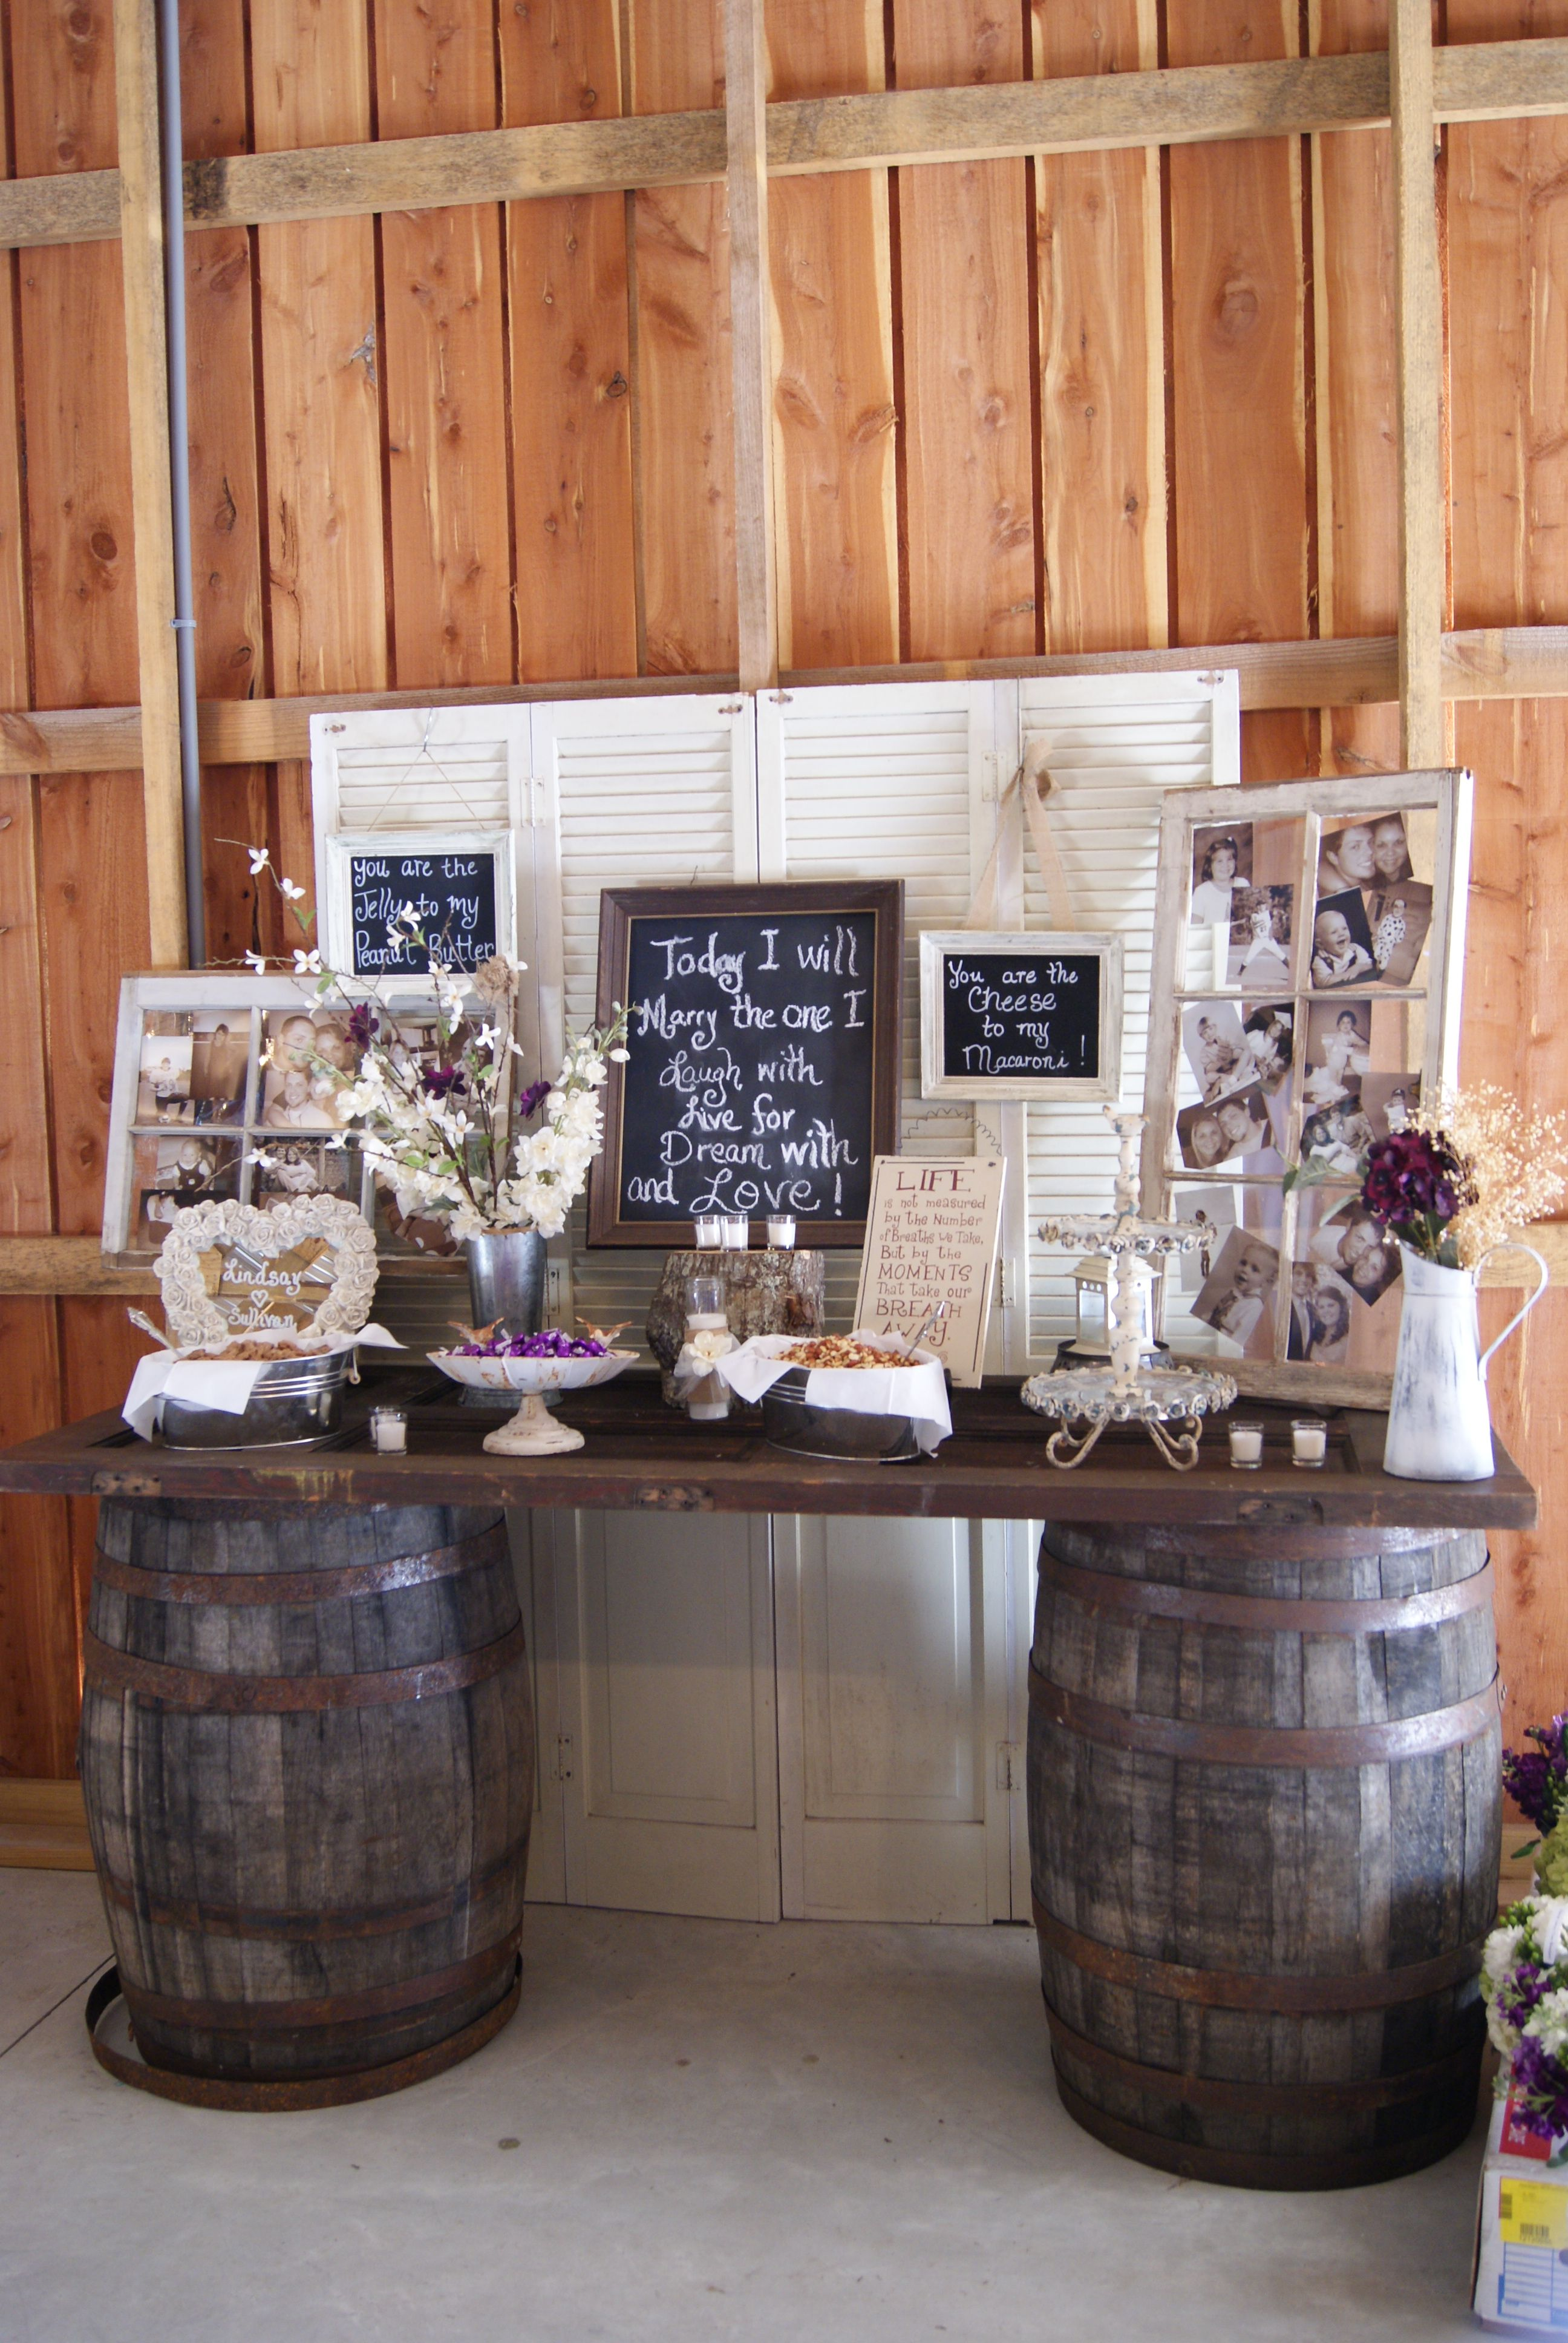 Chic Rustic Wedding Bride And Groom Table Decoration Ideas   Old Door For  Table With